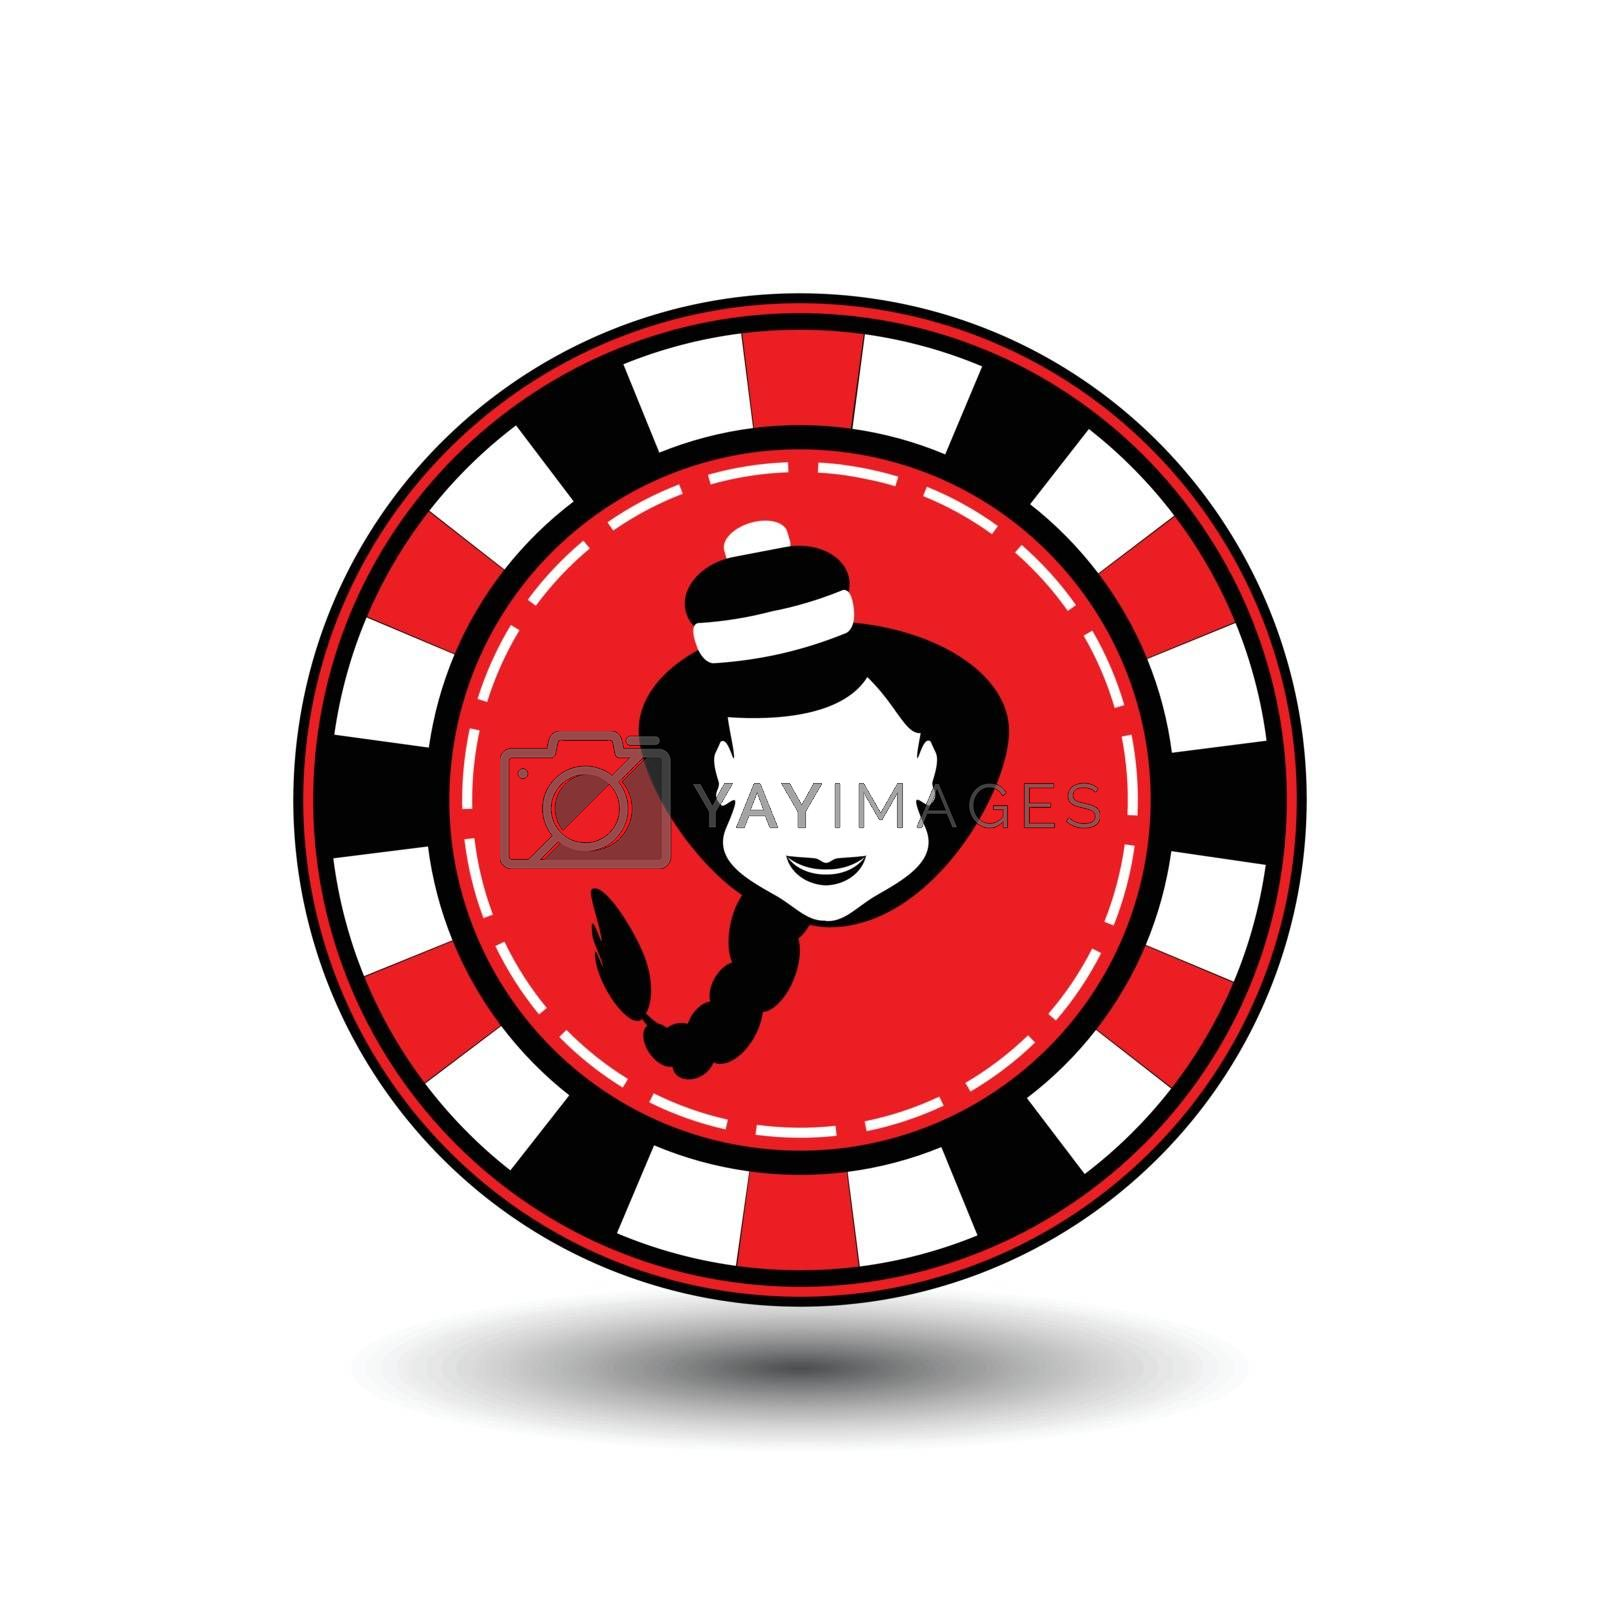 poker chip Christmas new year. Girl Santa Claus in black and red Icon EPS 10 vector illustration on a white background to separate easily. Use for websites, design, decoration, printing, etc.